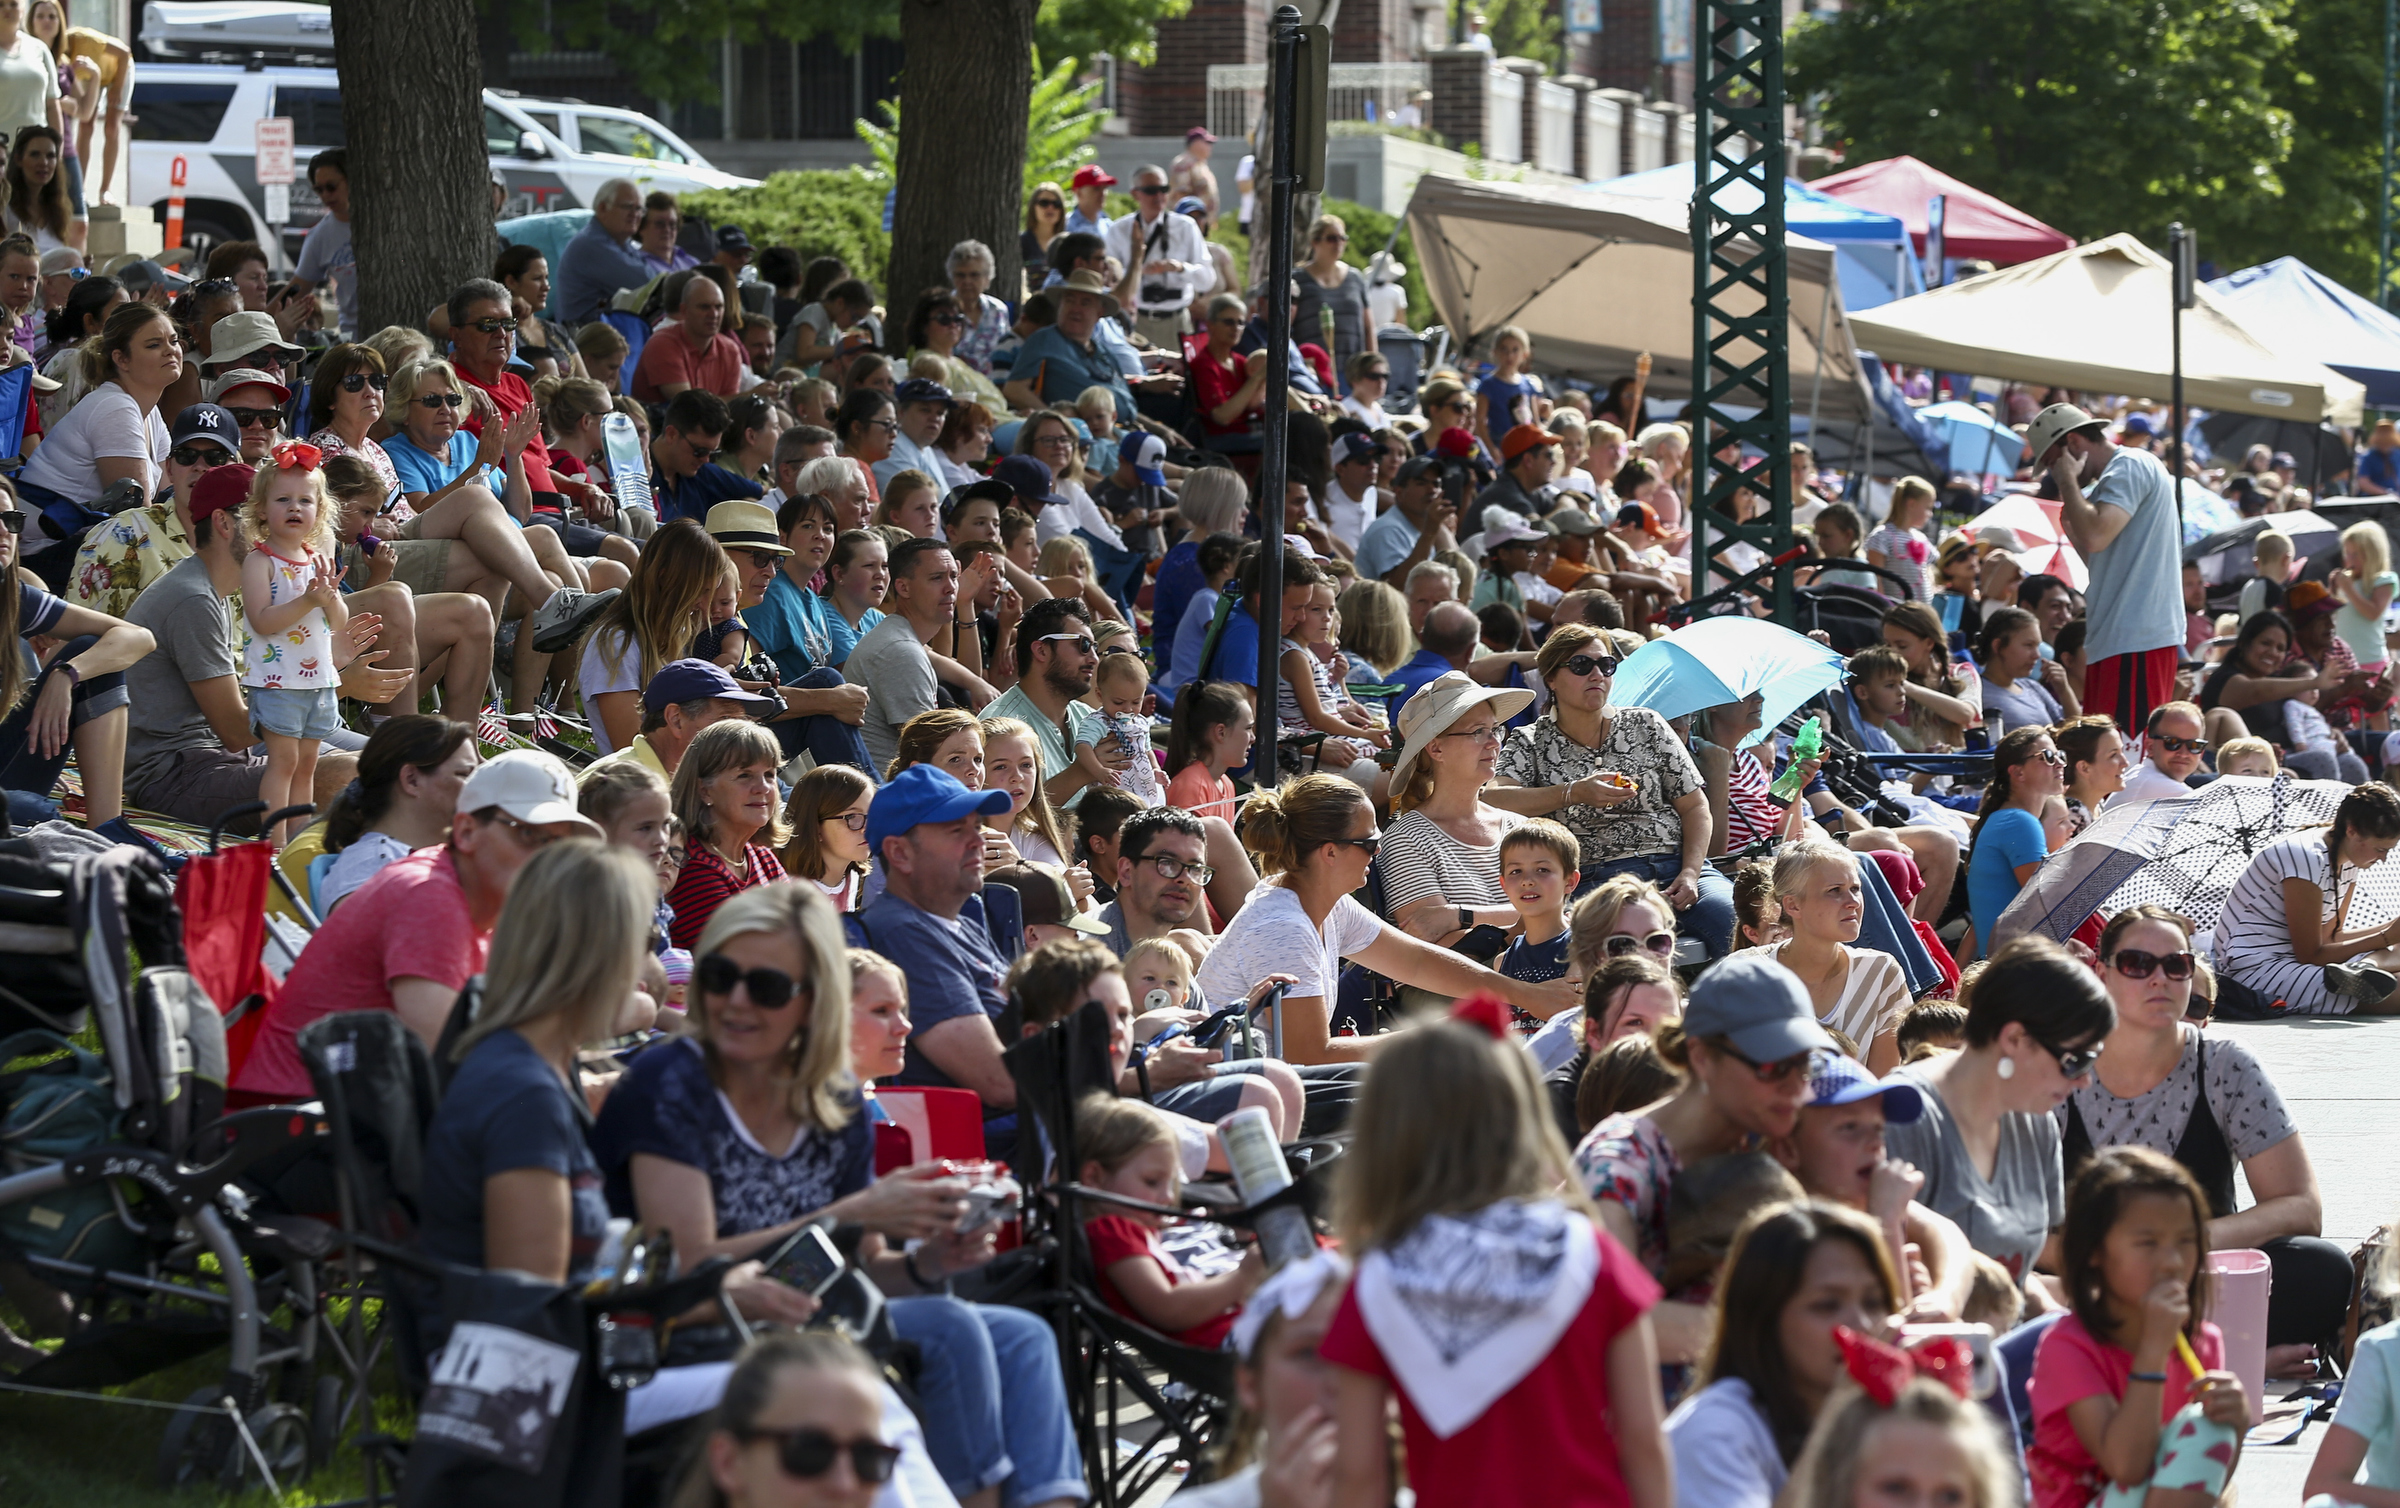 Hundreds pack South Temple street as the Days of '47 Parade passes by in Downtown Salt Lake City on Wednesday, July 24, 2019.